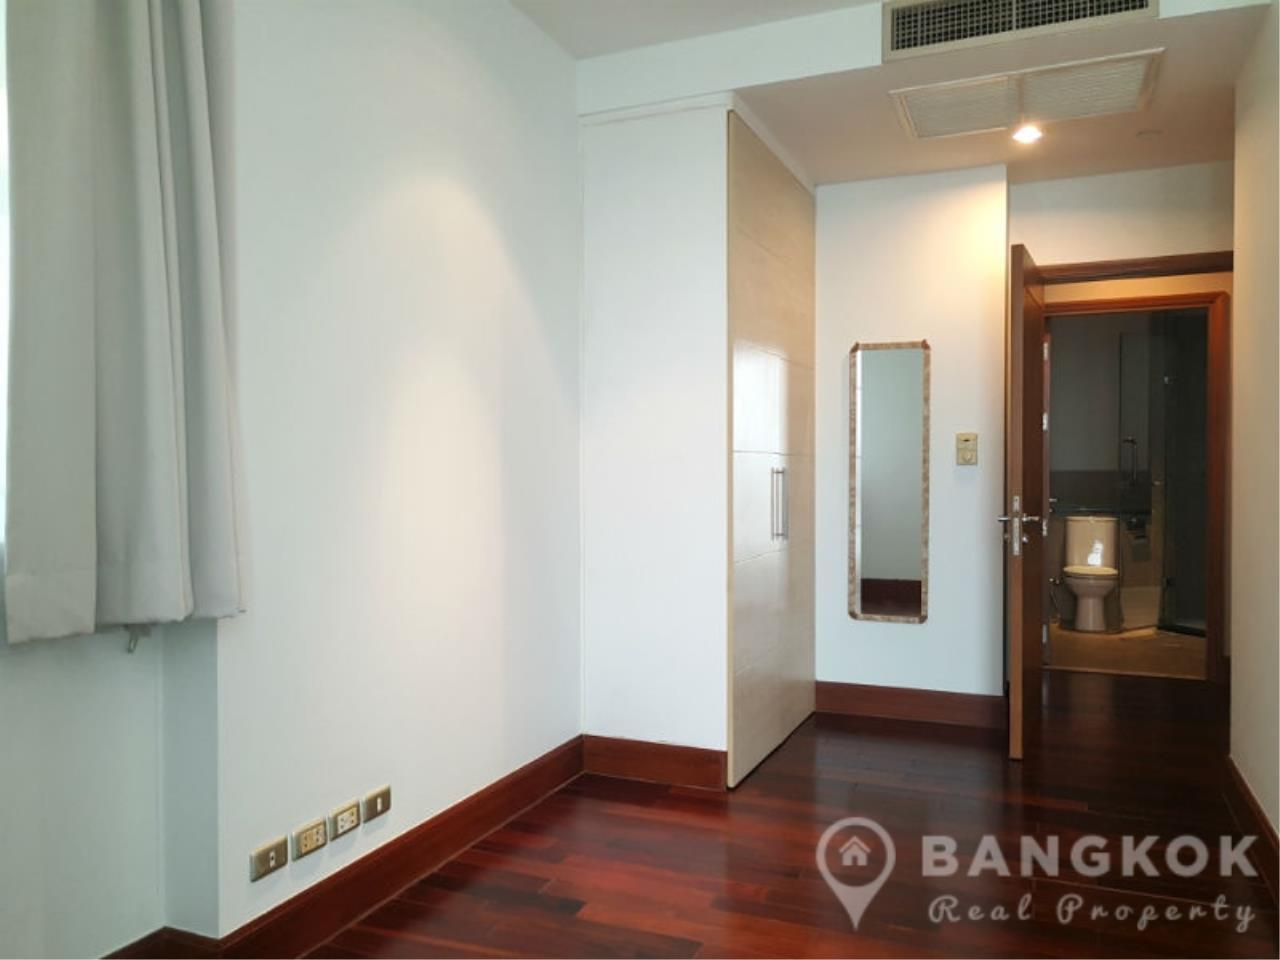 Bangkok Real Property Agency's Sky Villas (Ascott) Sathorn | Spacious High Floor 2 +1 Bed 2 Bath 14